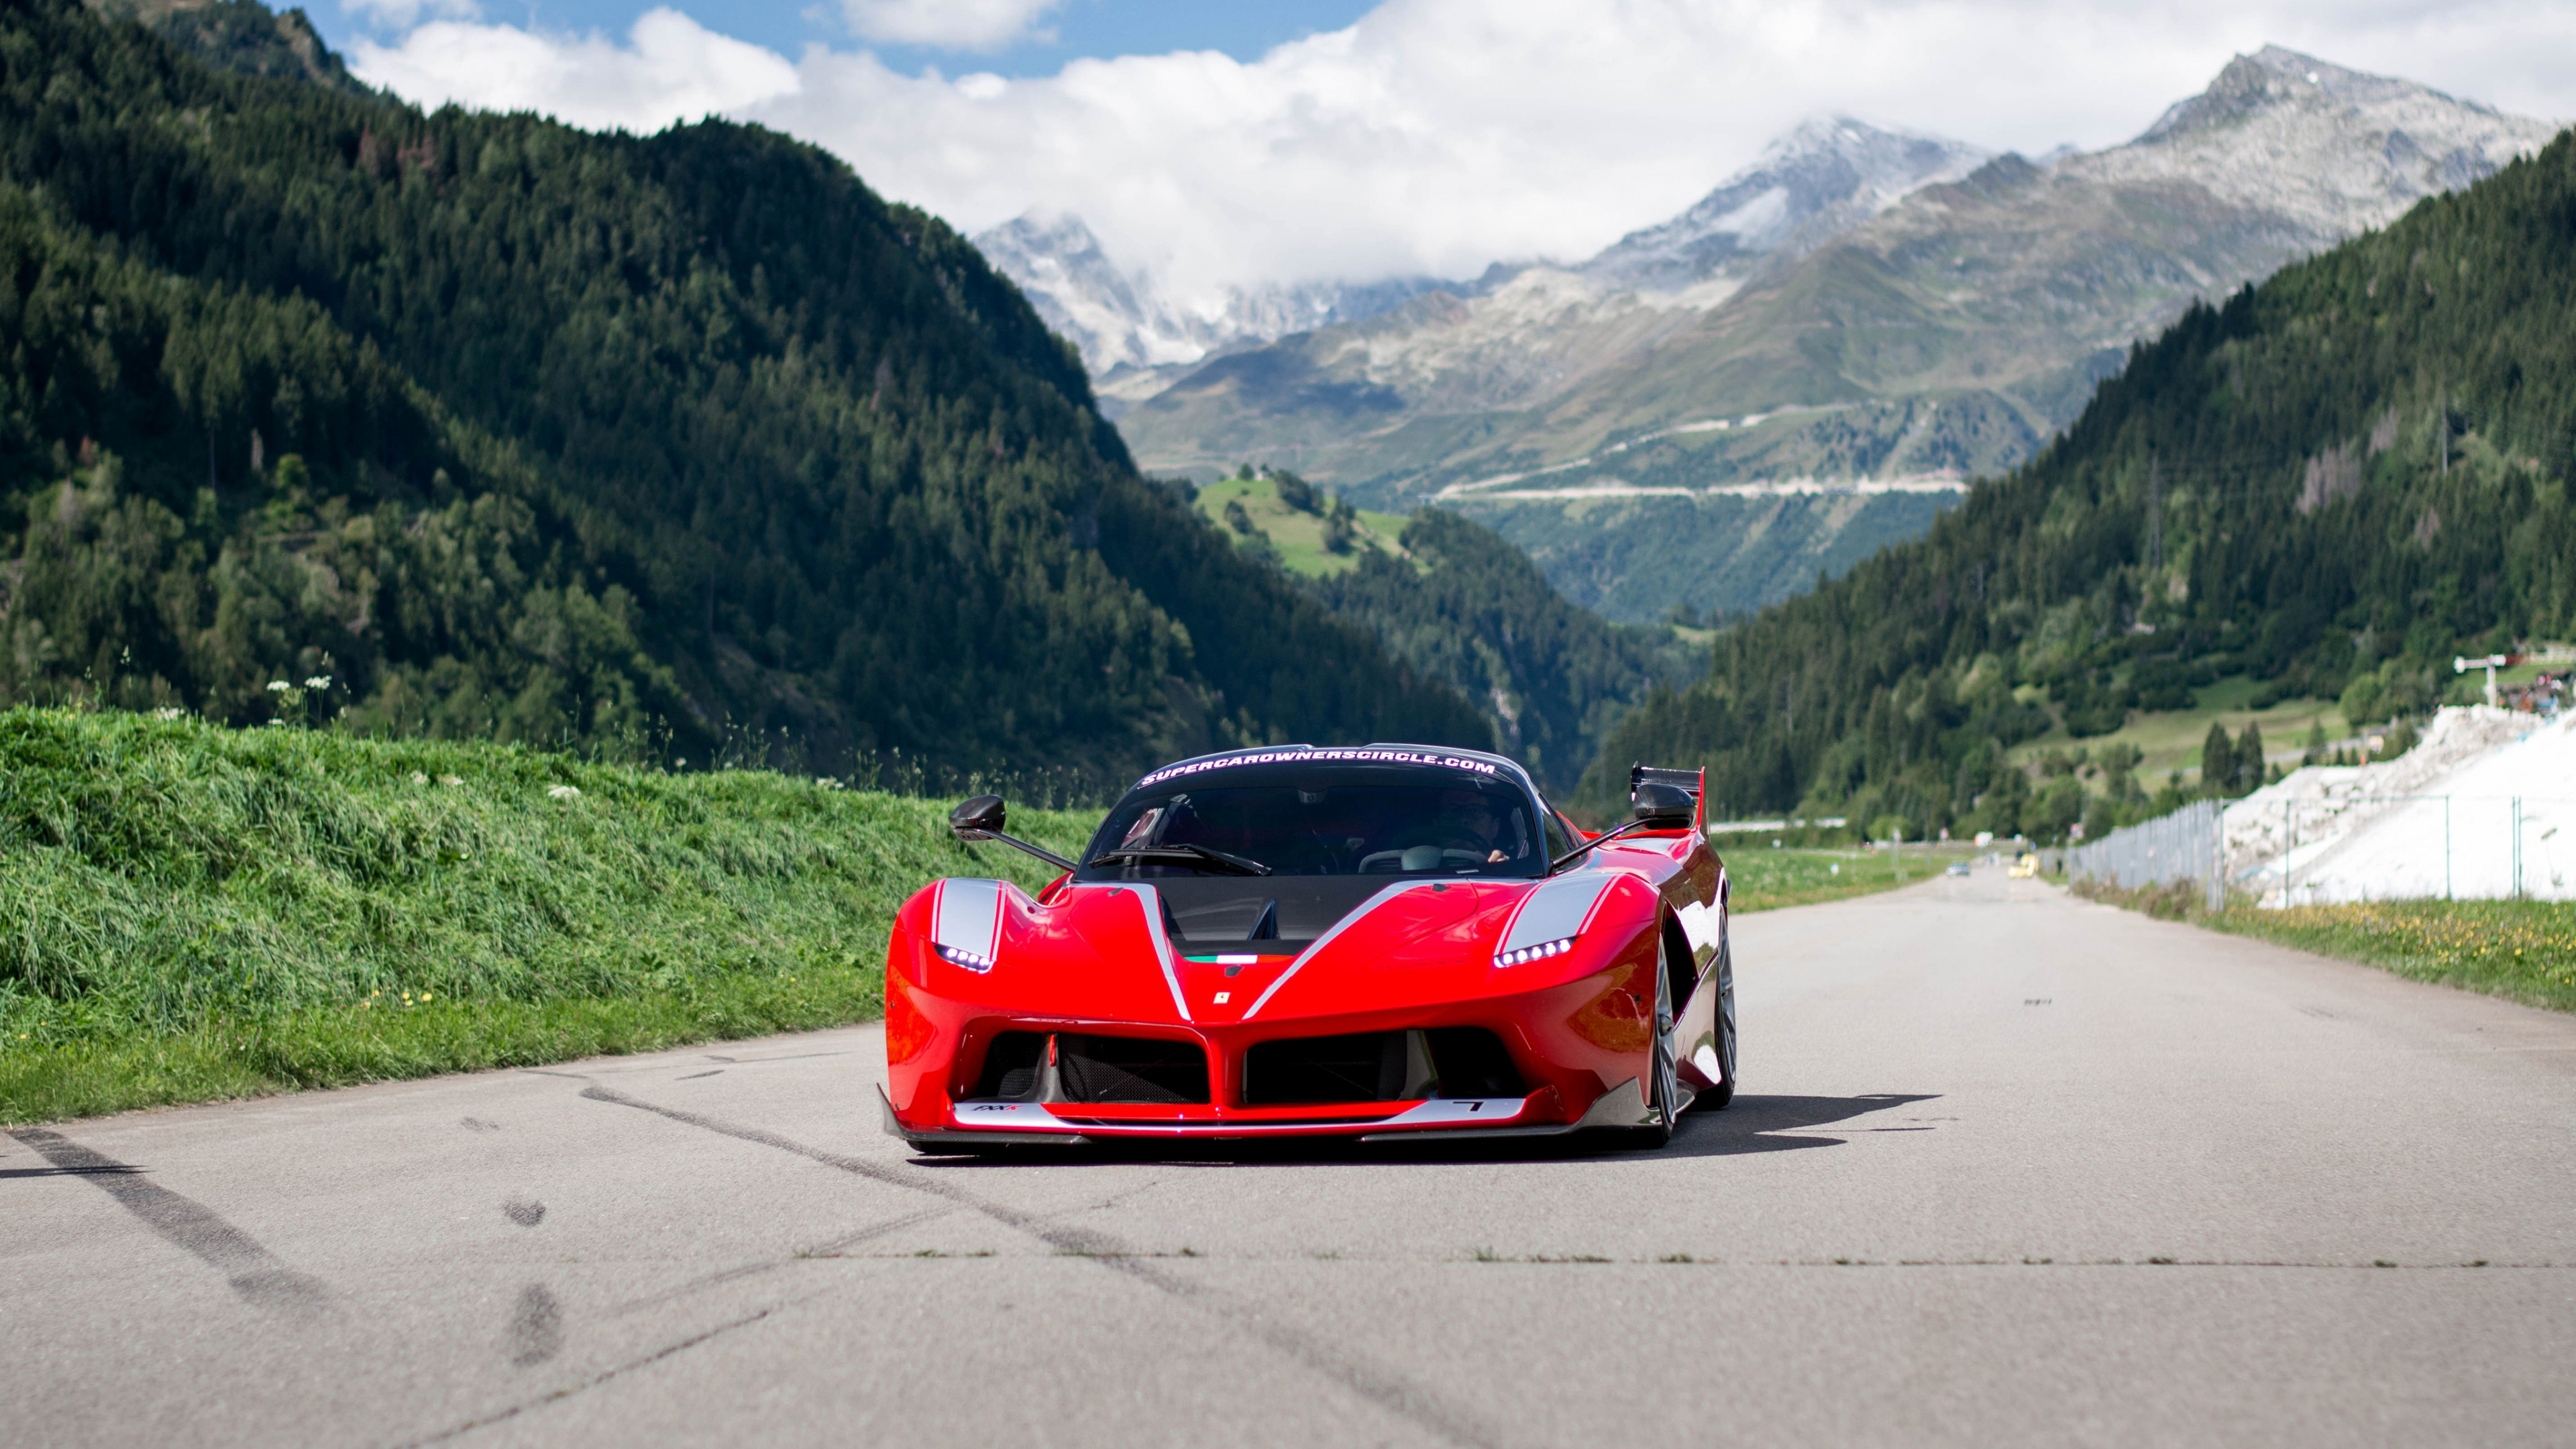 2017 Ferrari FXX K 4K Wallpaper | HD Car Wallpapers | ID #8805